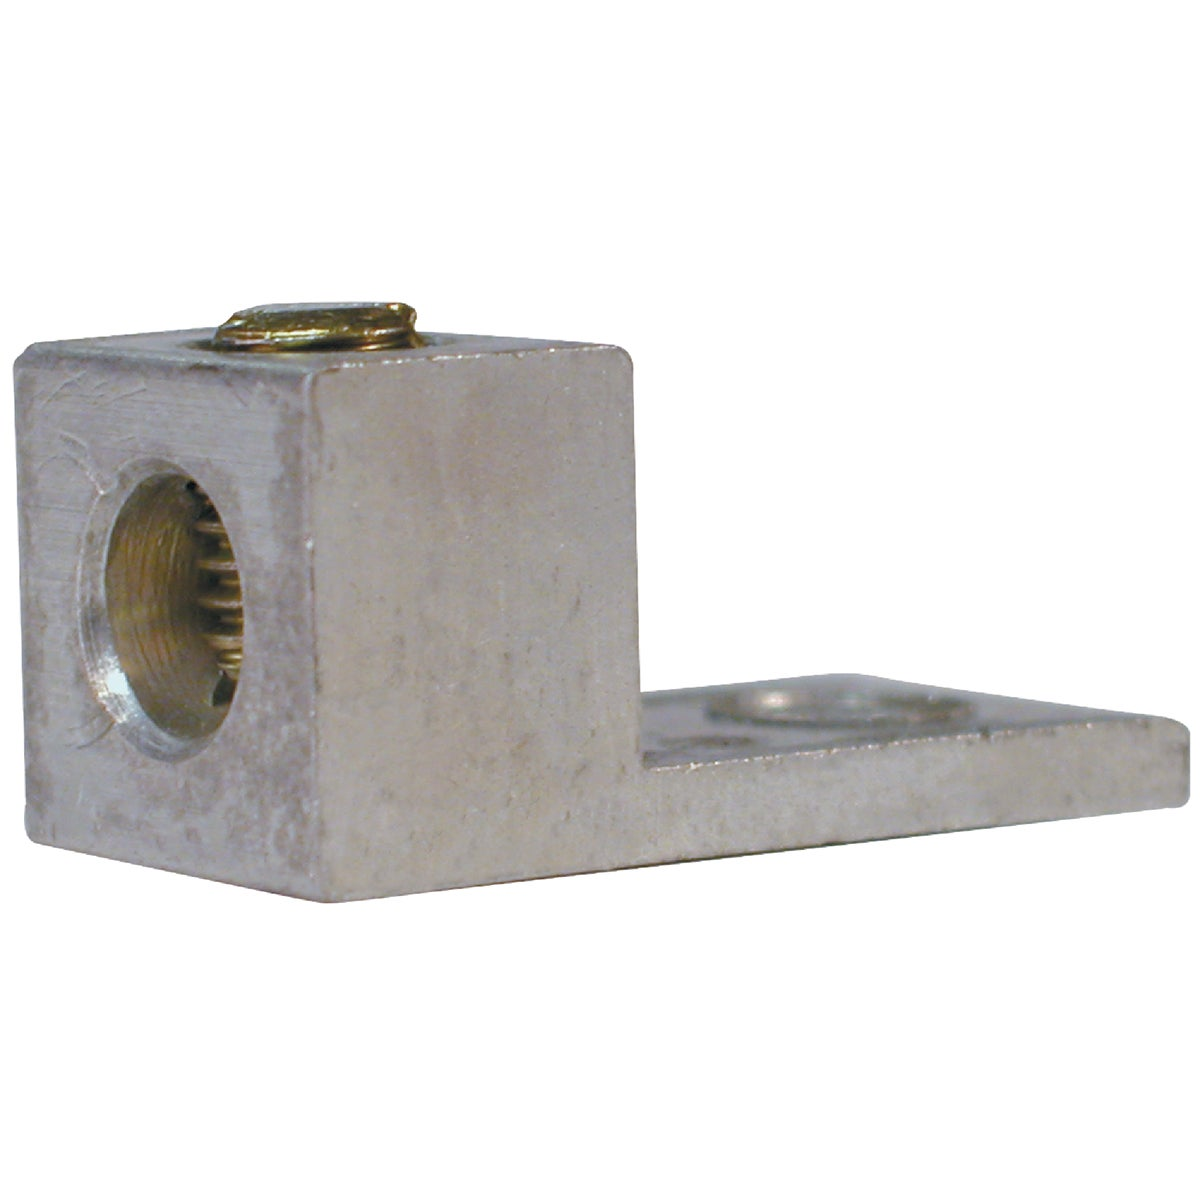 250-6 MECHANICAL LUG